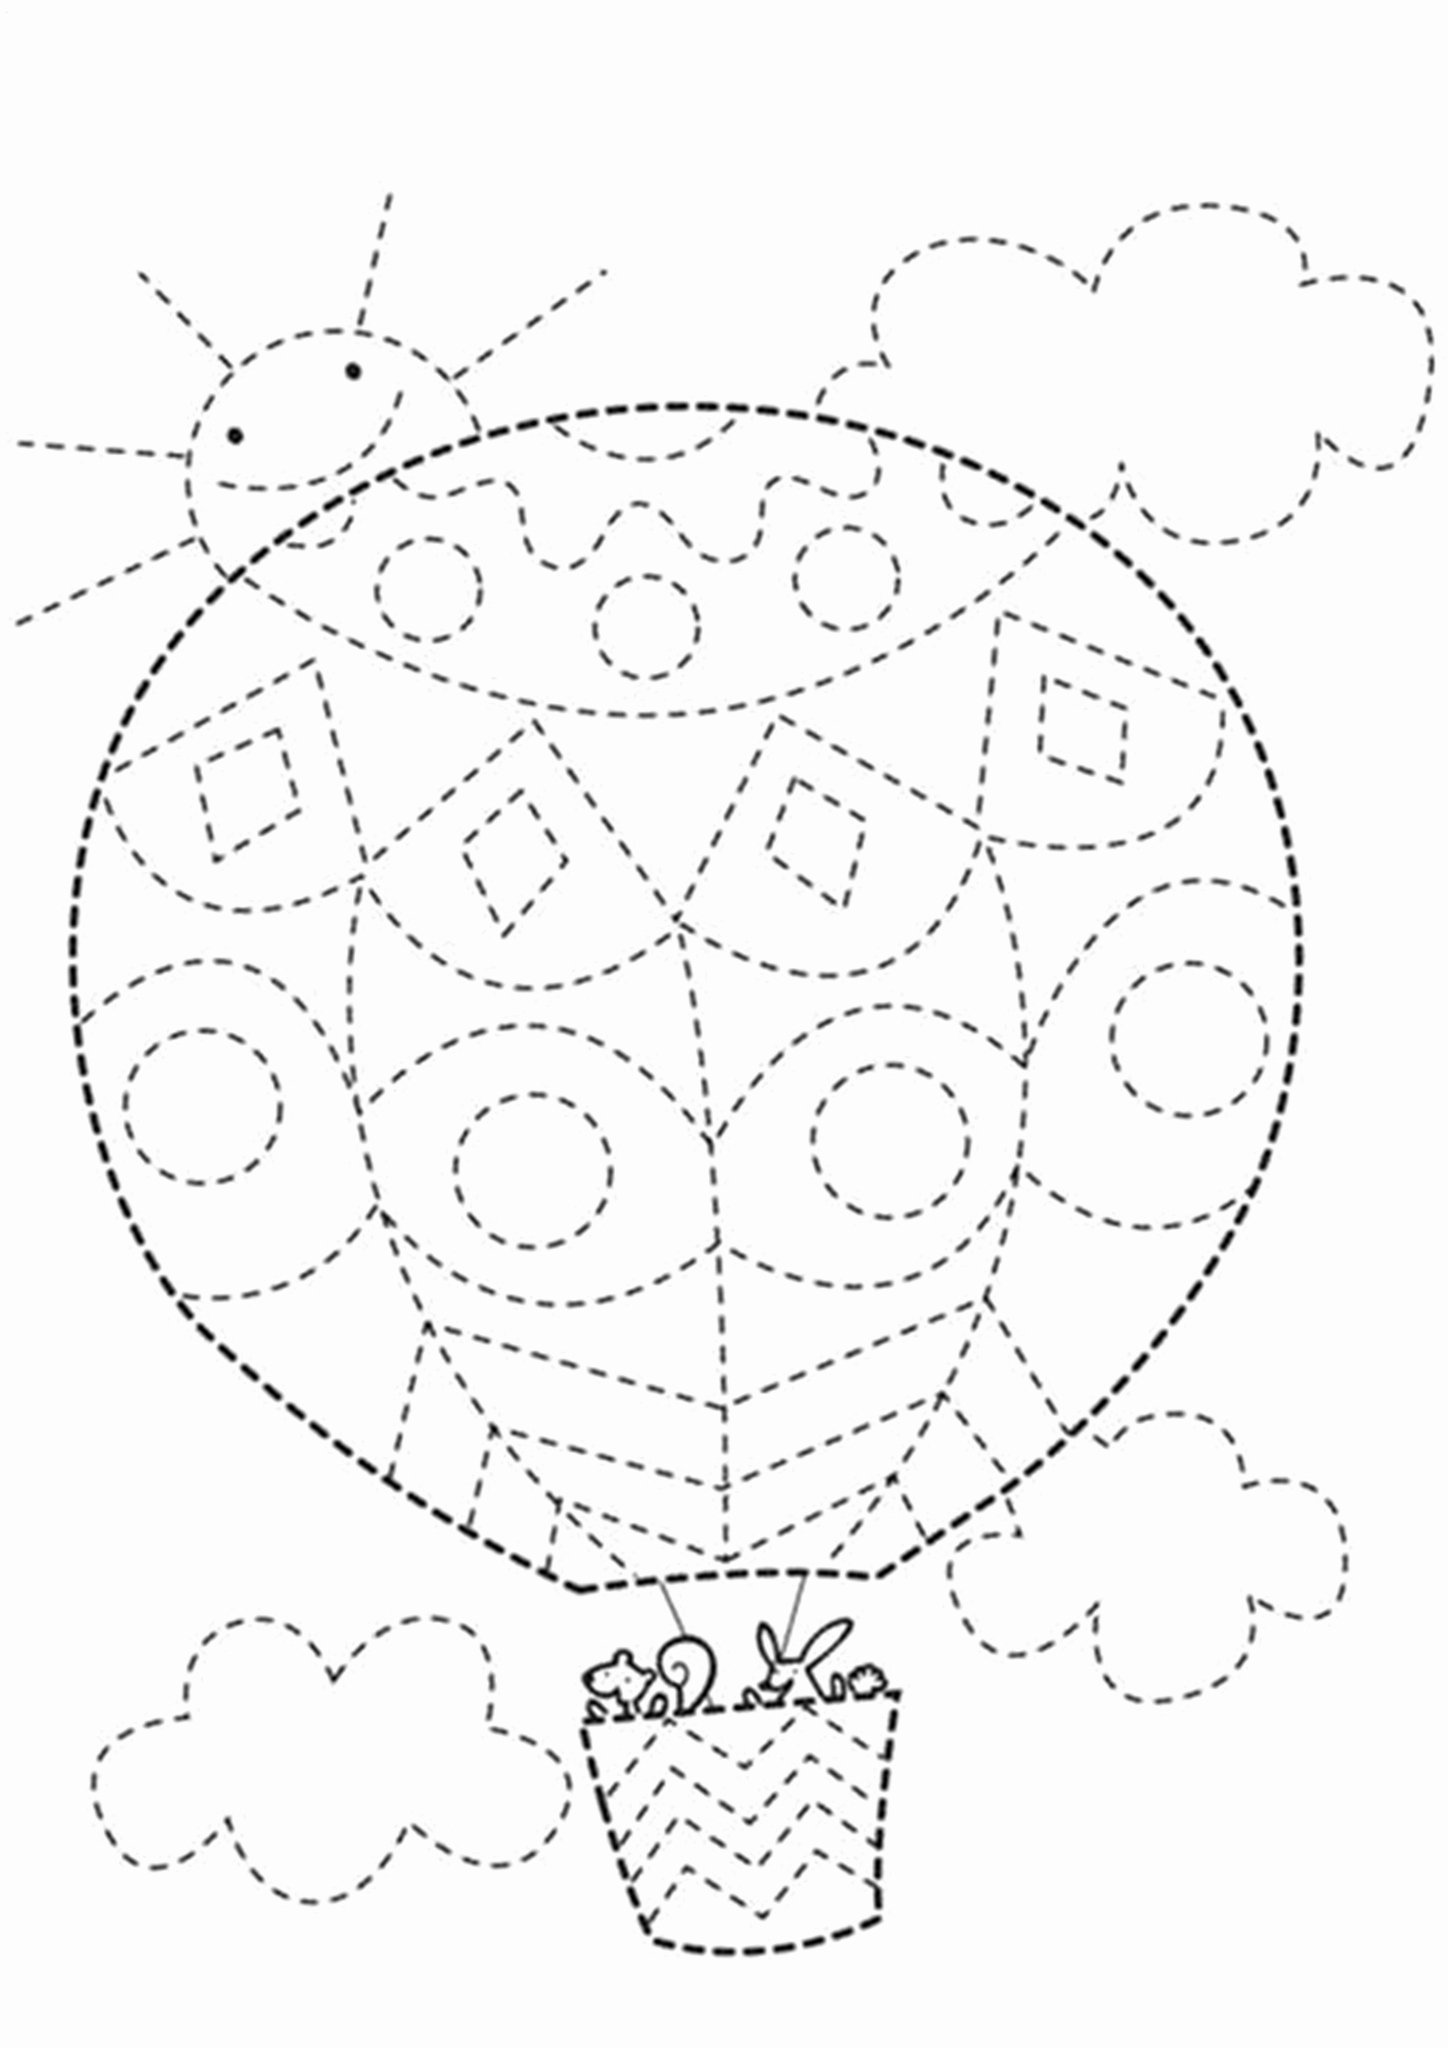 Tracing Lines Worksheets for Preschoolers Fresh Worksheets Free and Easy to Print Tracing Lines Worksheets